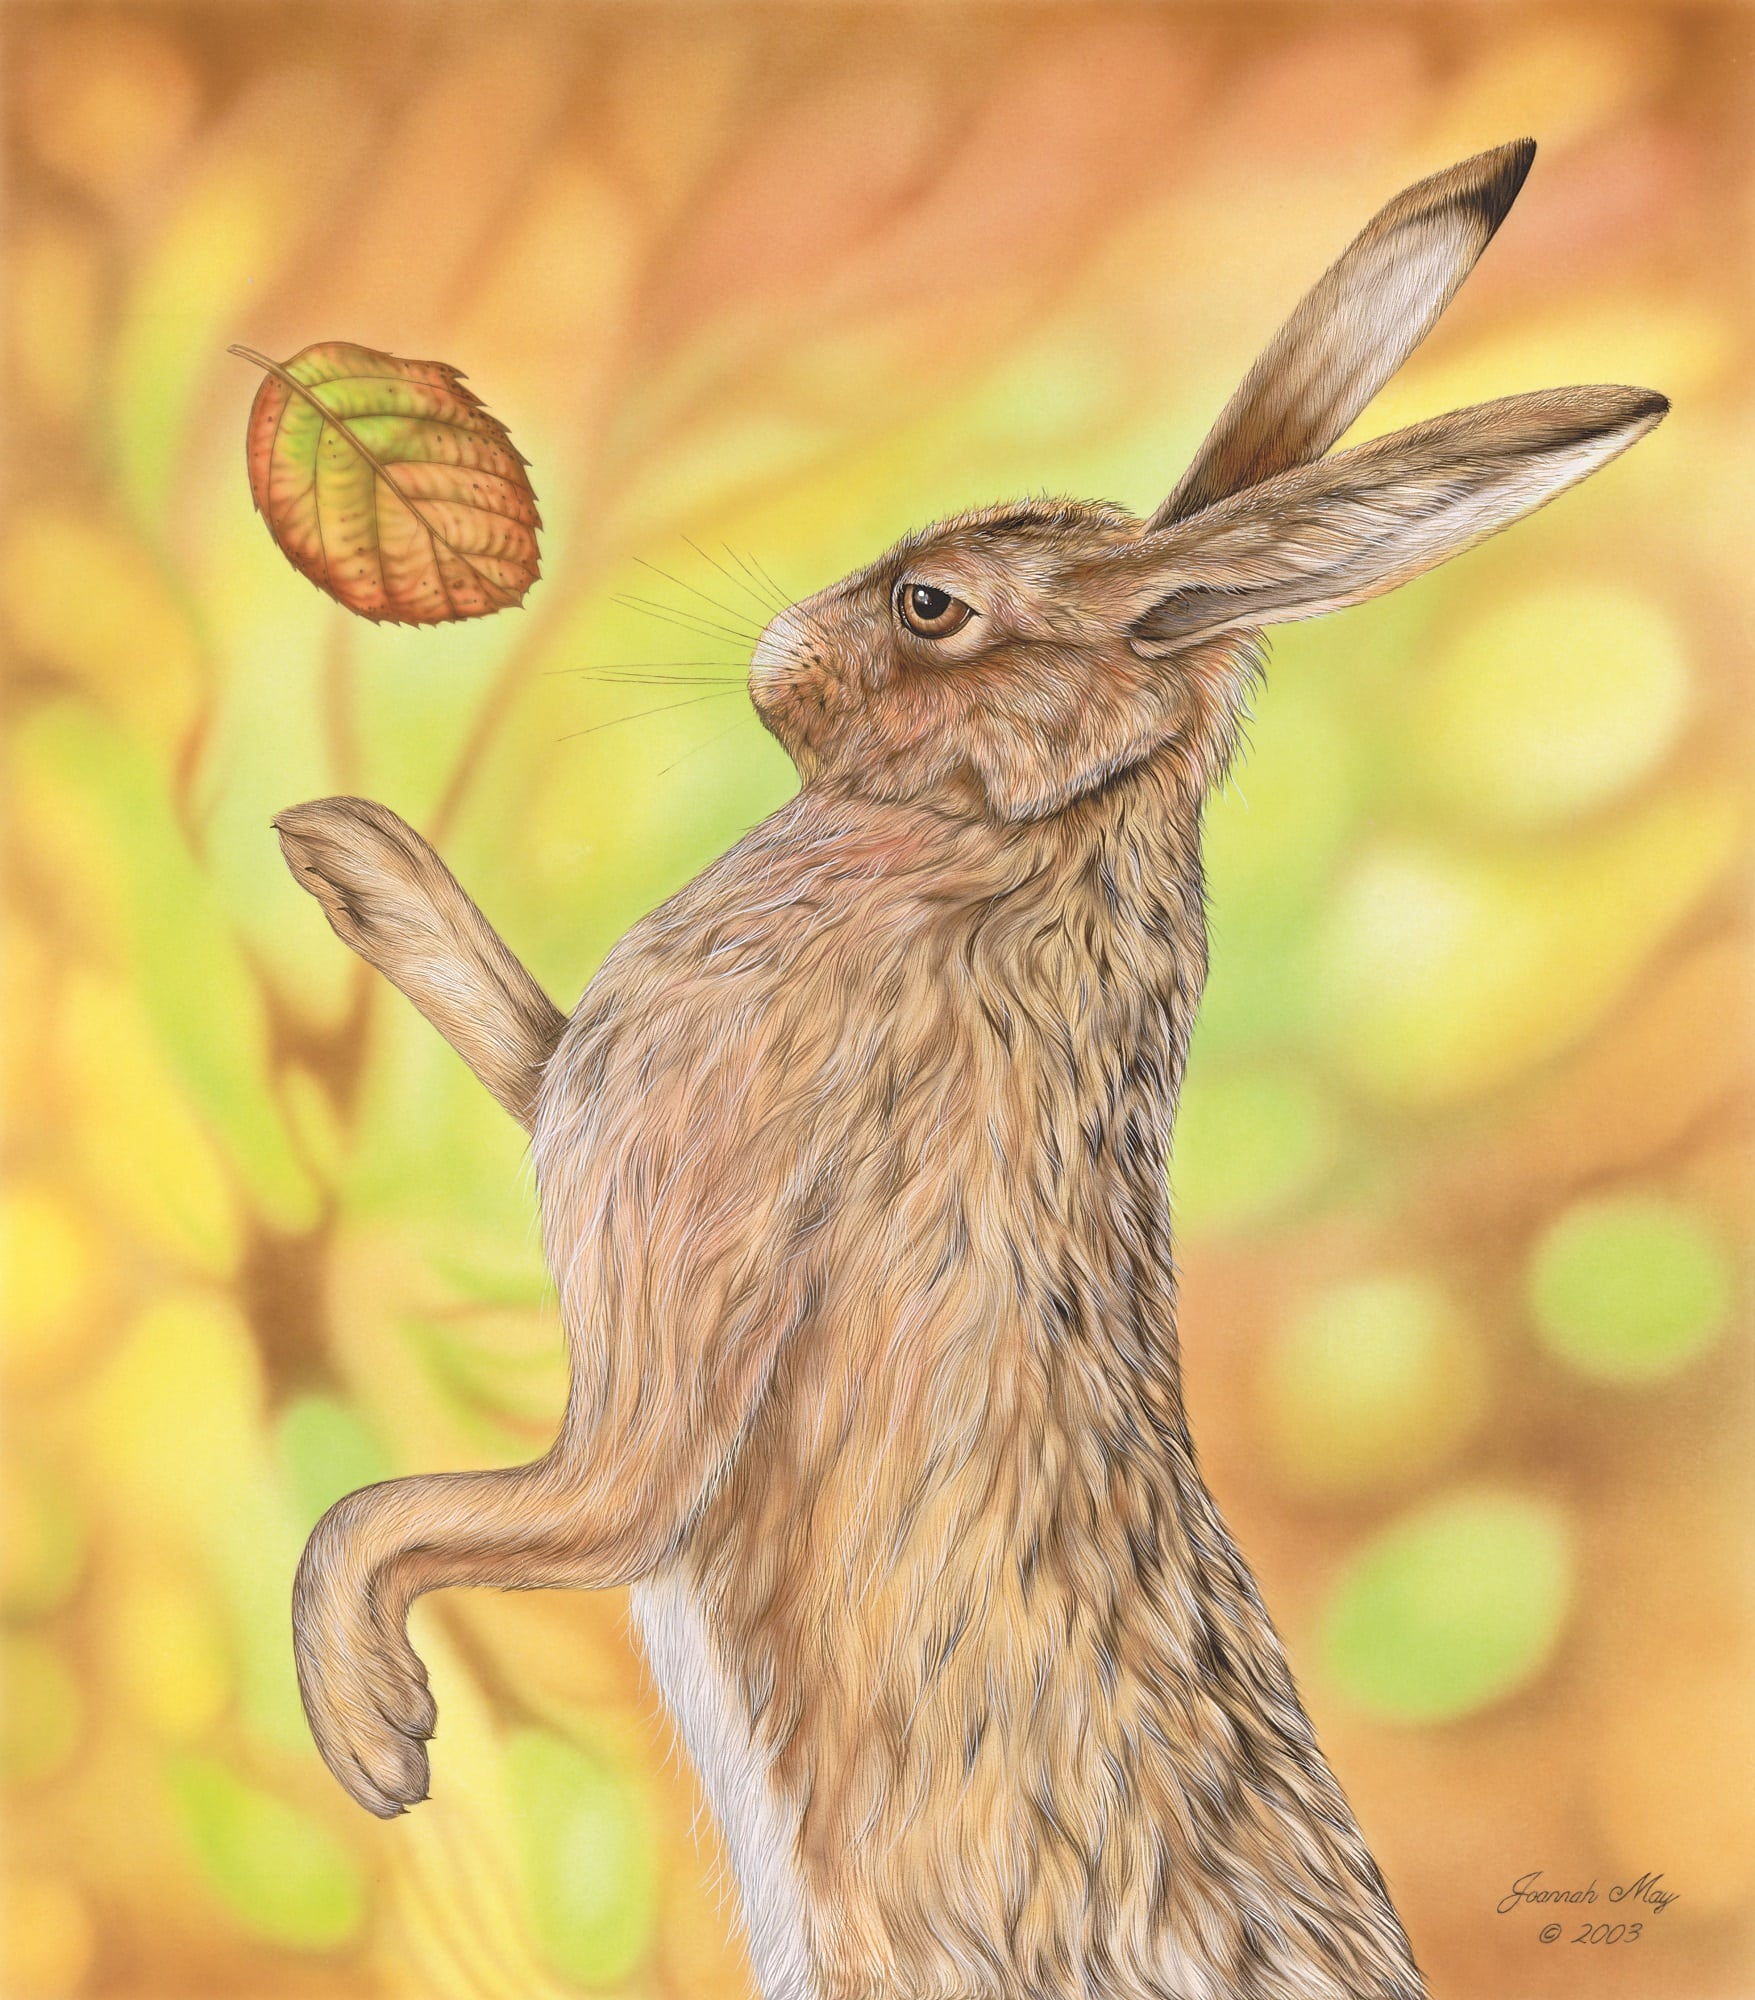 A painting depicting a 'dancing' male hare. The hare has won a boxing match and a single bramble leaf which was kicked up during the fight is now falling slowly.